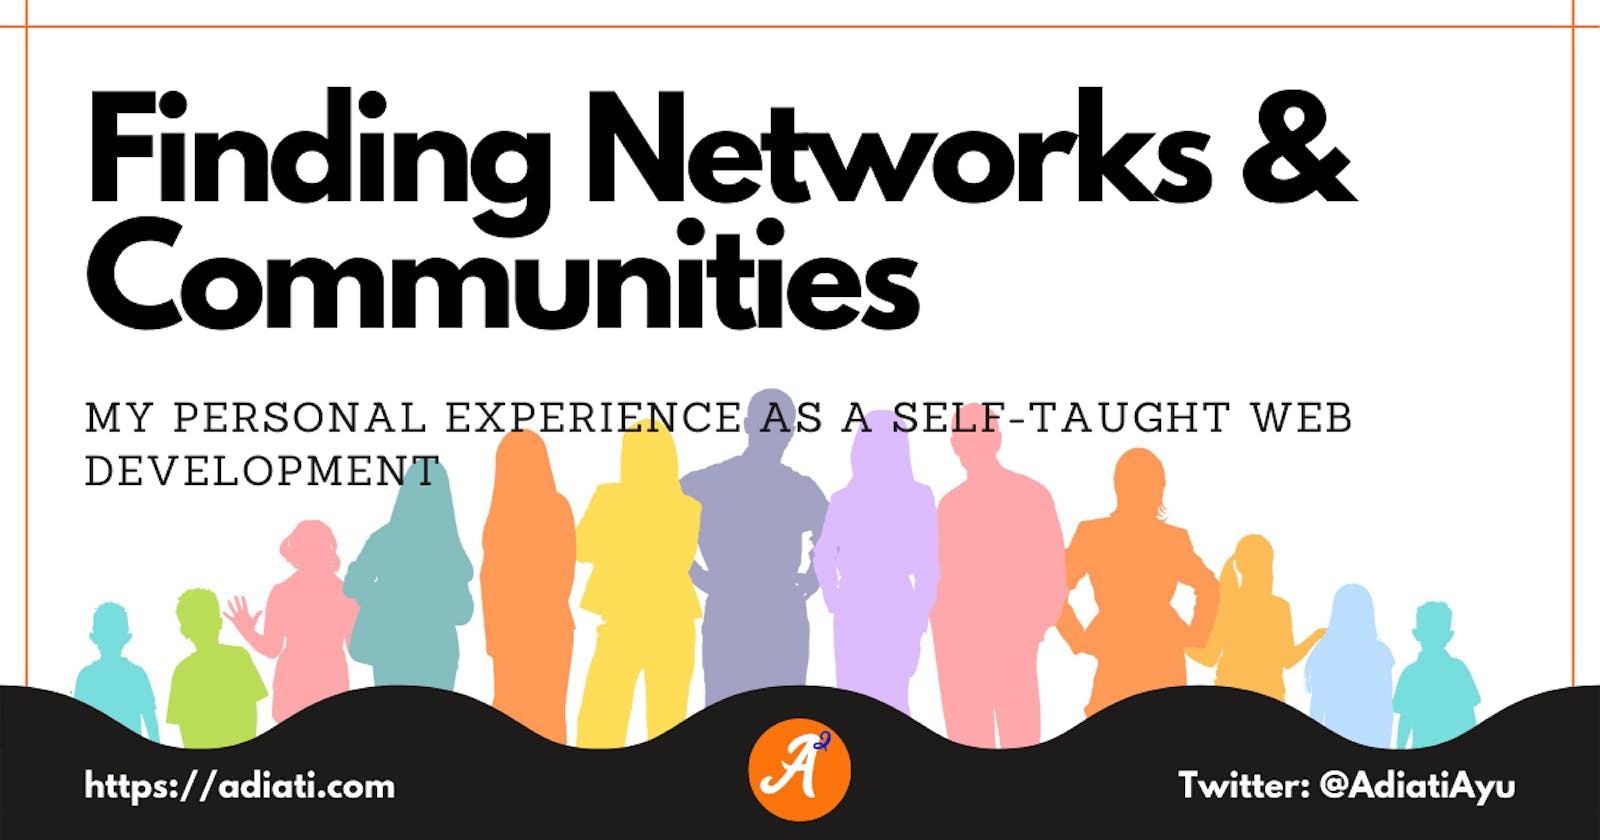 Finding Networks & Communities